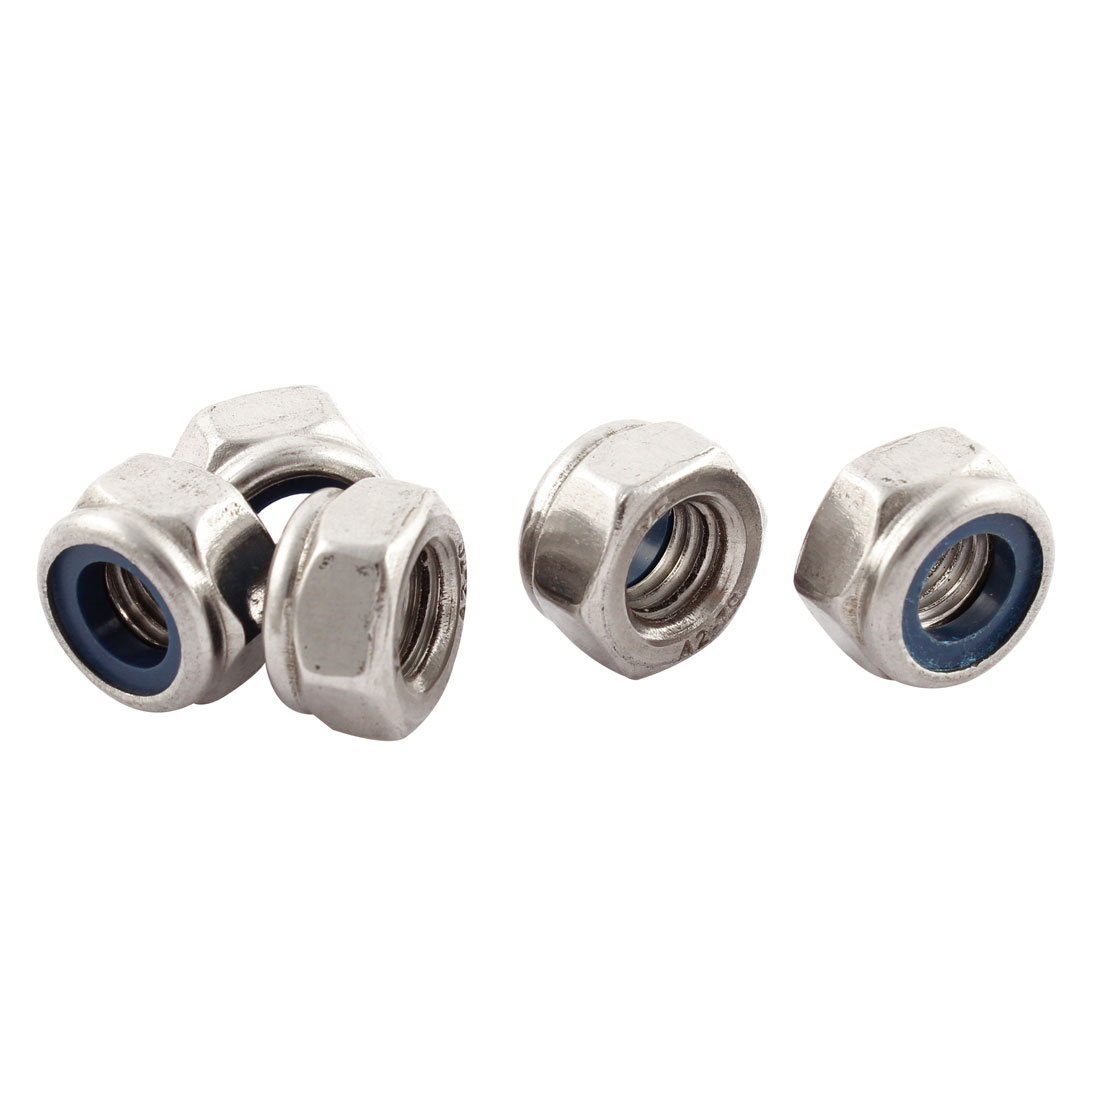 5pcs M10x1.5mm Metric Stainless Steel Anti-loose Nylon Insert Lock Hex Nuts